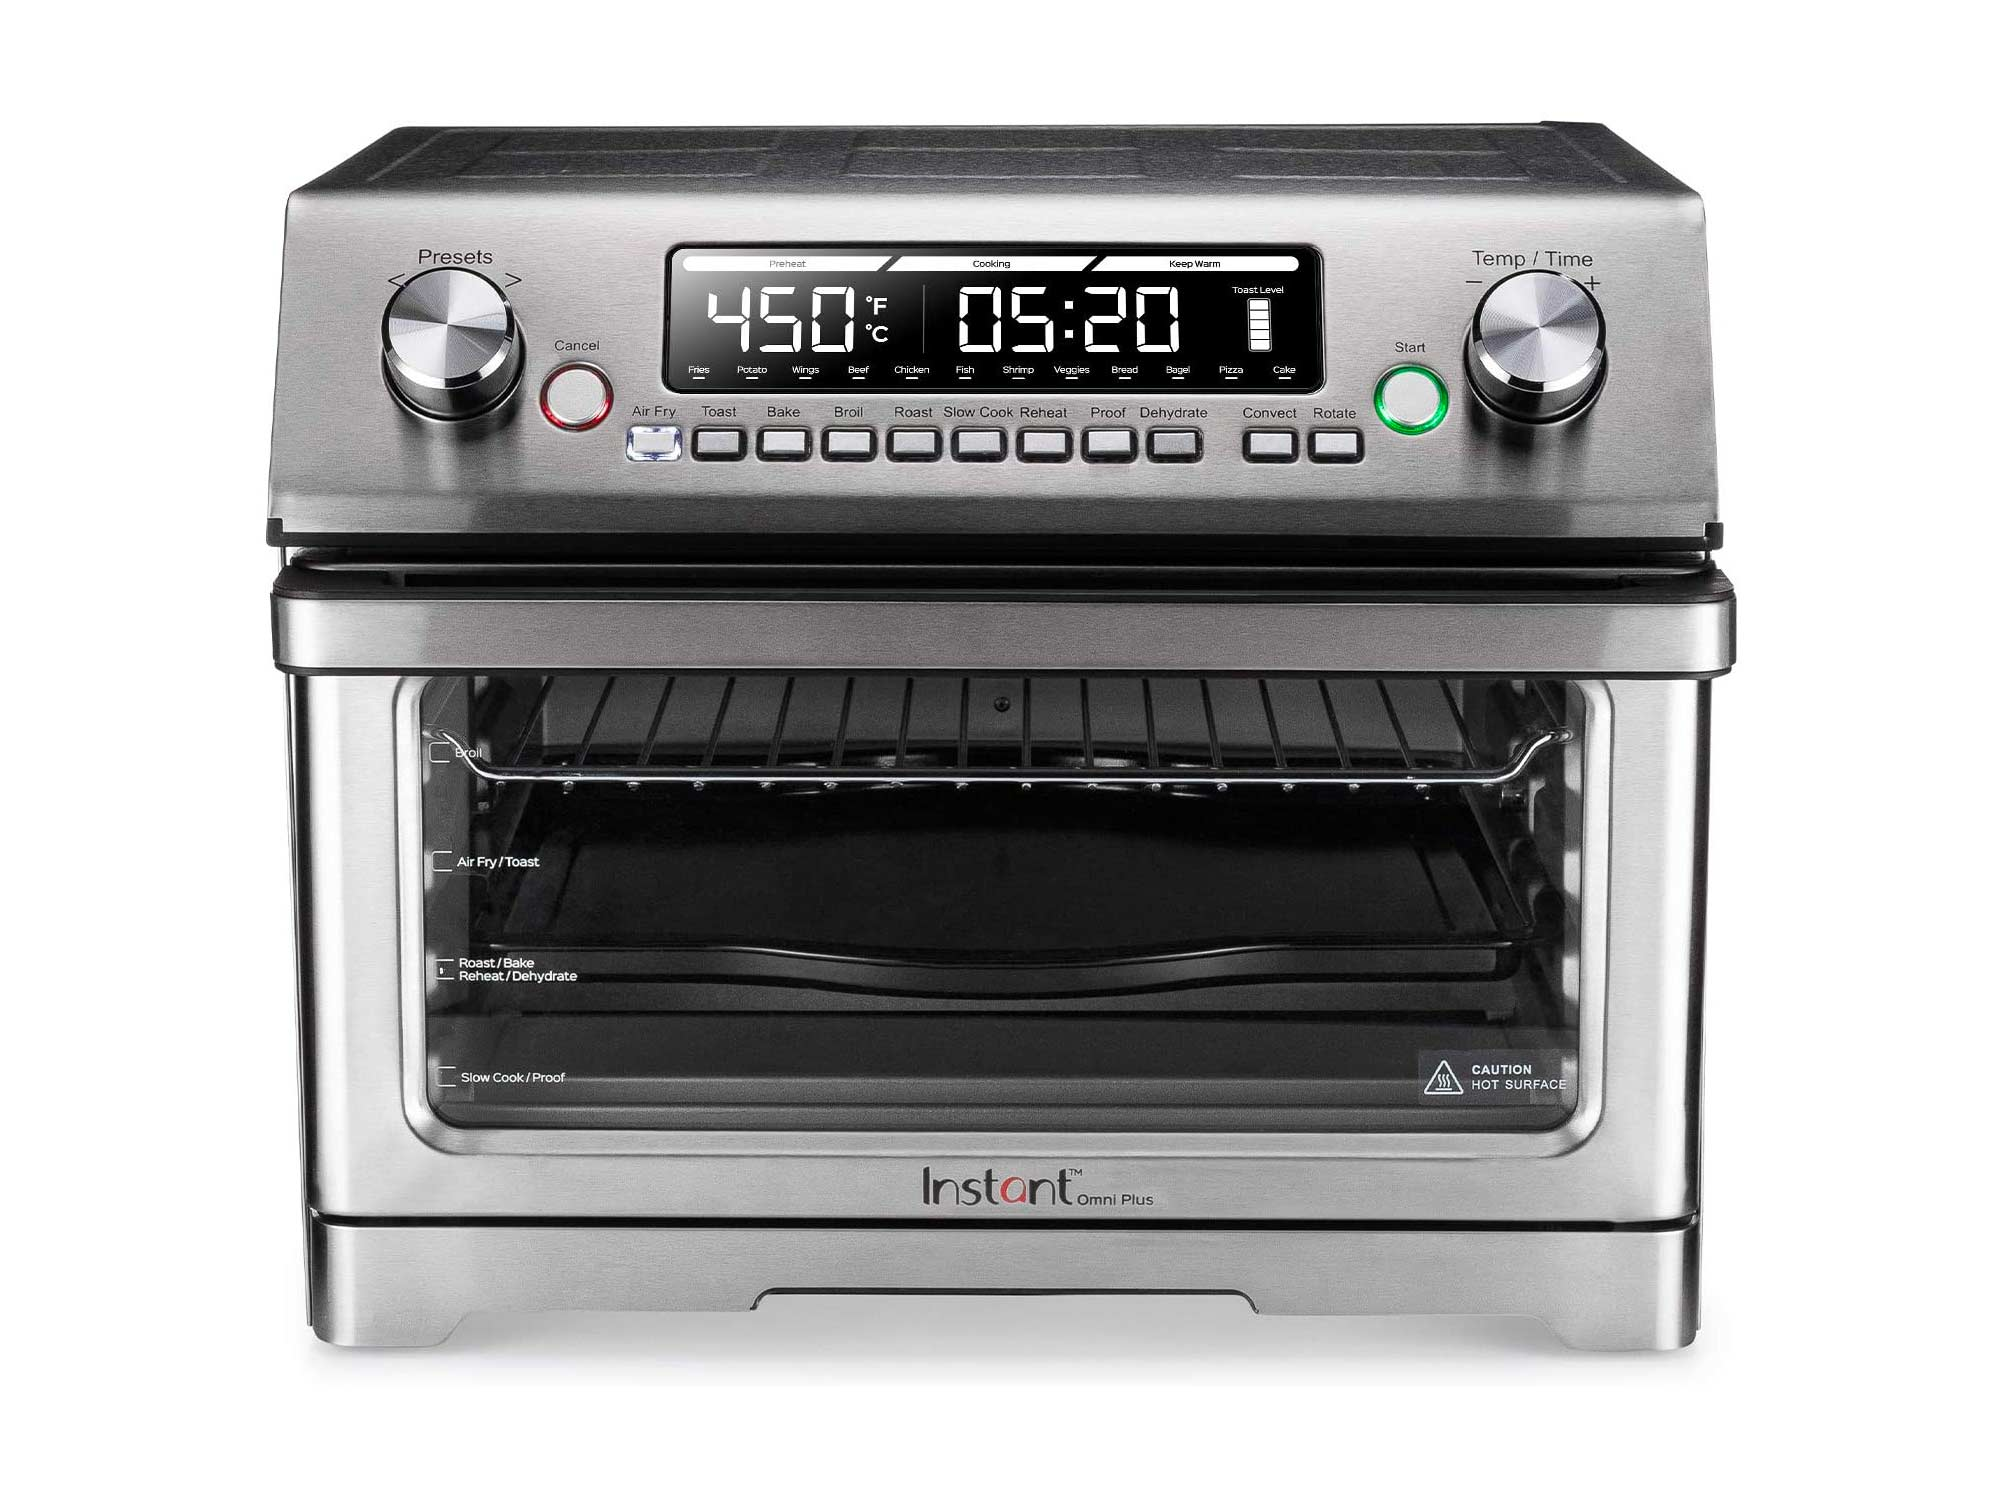 Instant Omni Plus Air Fryer Toaster Oven 11 in 1, 26L, Rotisserie, Reheat Pizza